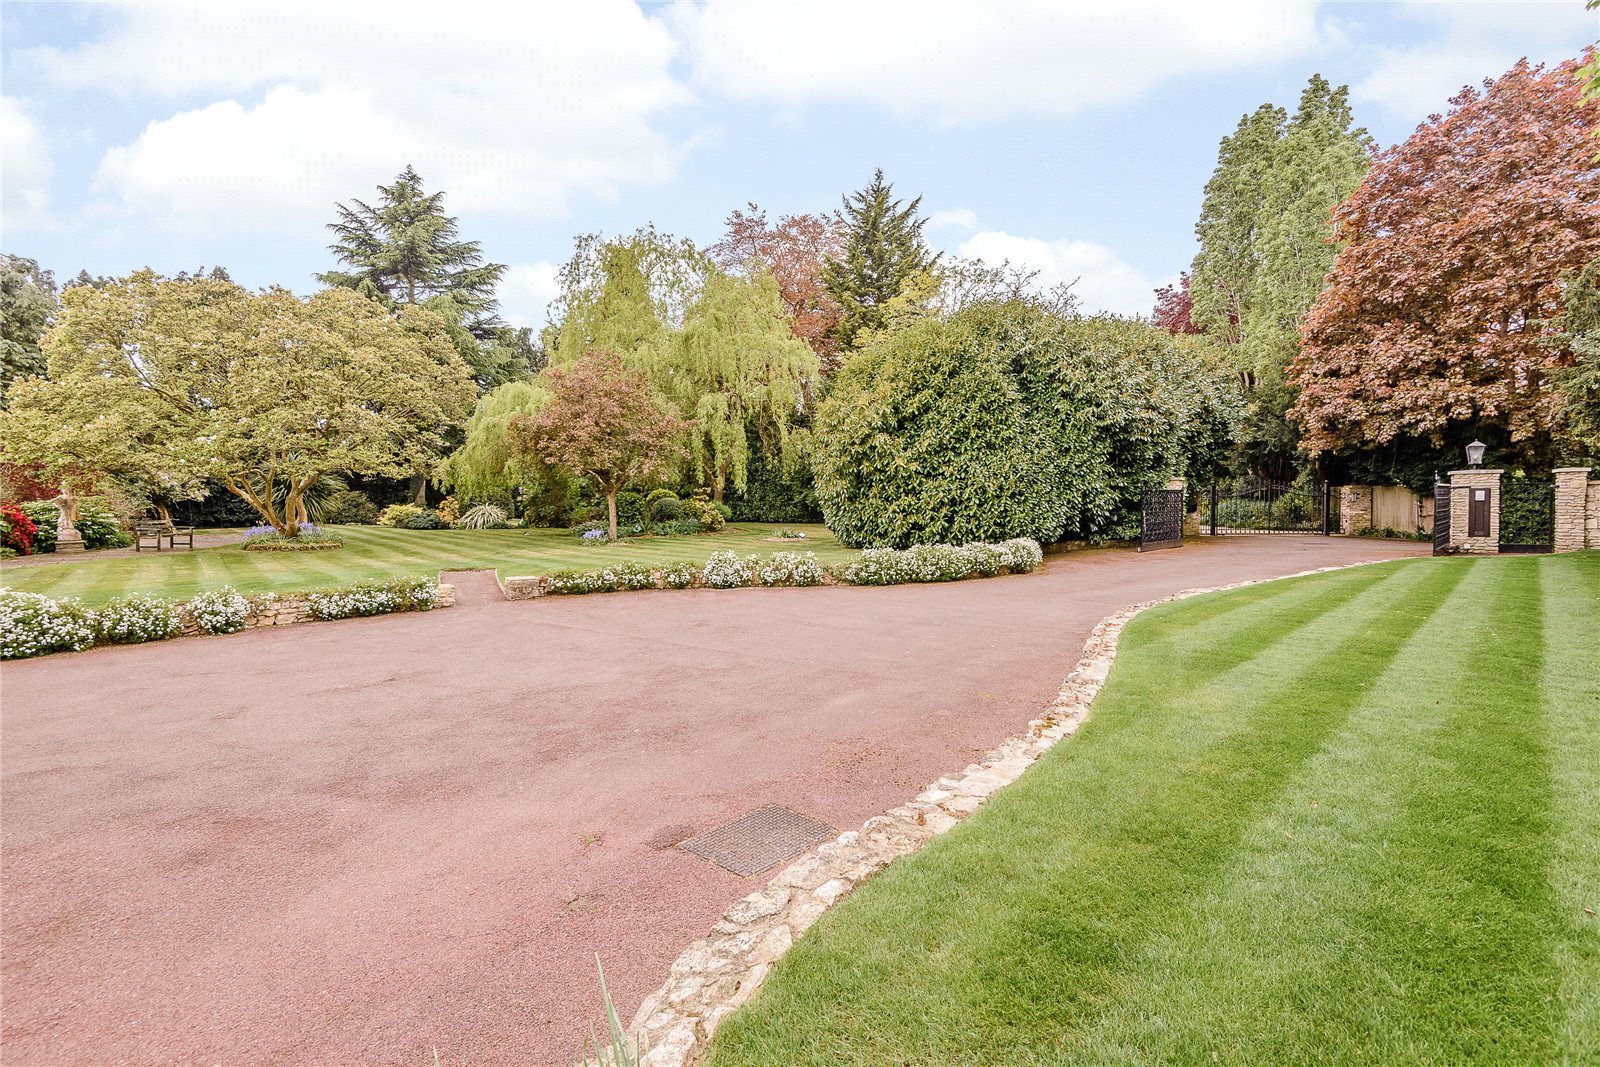 Additional photo for property listing at Village Road, Denham Village, Buckinghamshire, UB9 Buckinghamshire, England